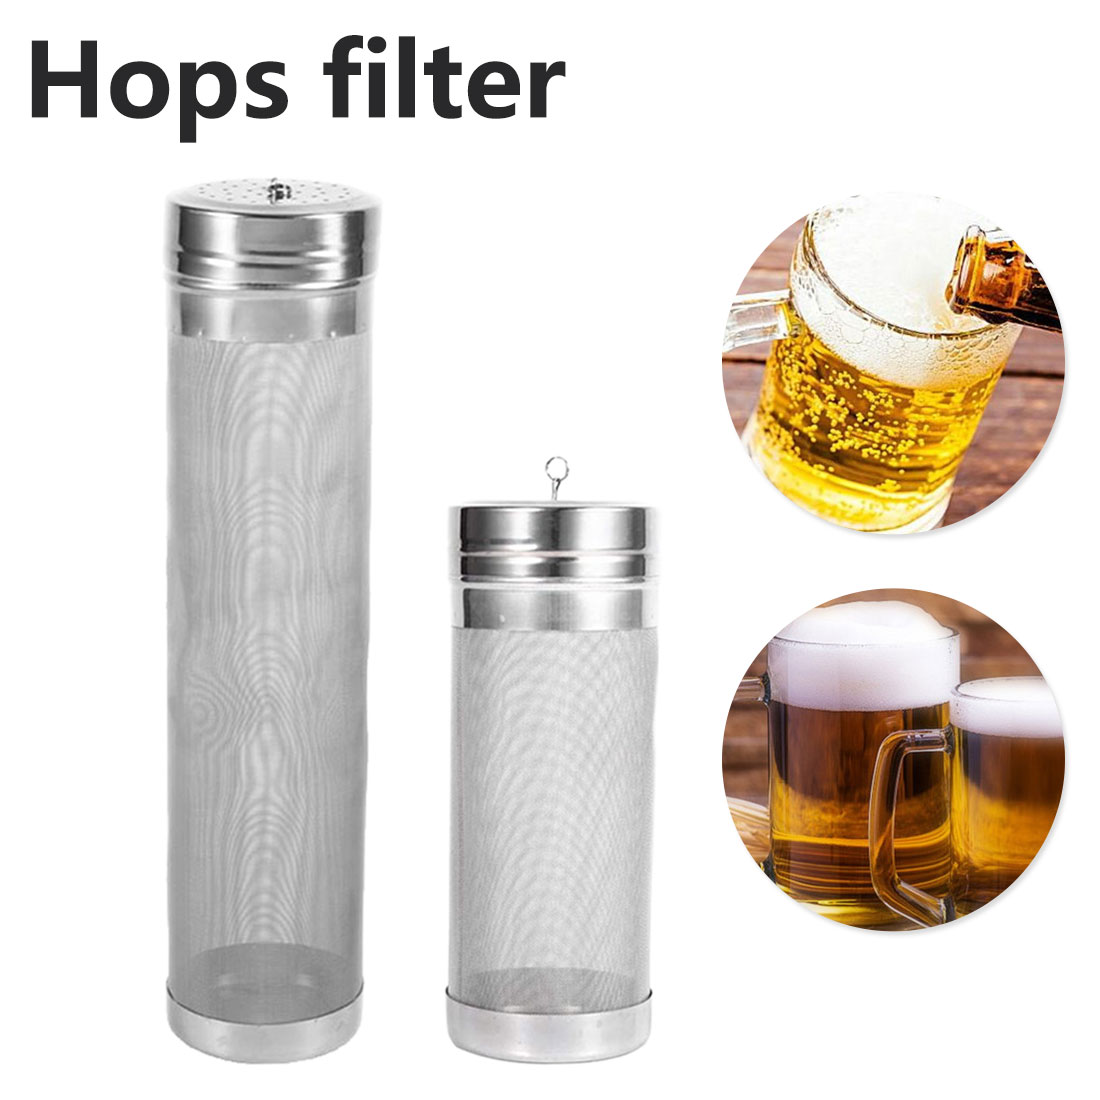 Home Coffee Dry Hopper Home Brew 300 Micron Stainless Steel Hop Spider Mesh Beer Filter With Hook For Homemade Brew